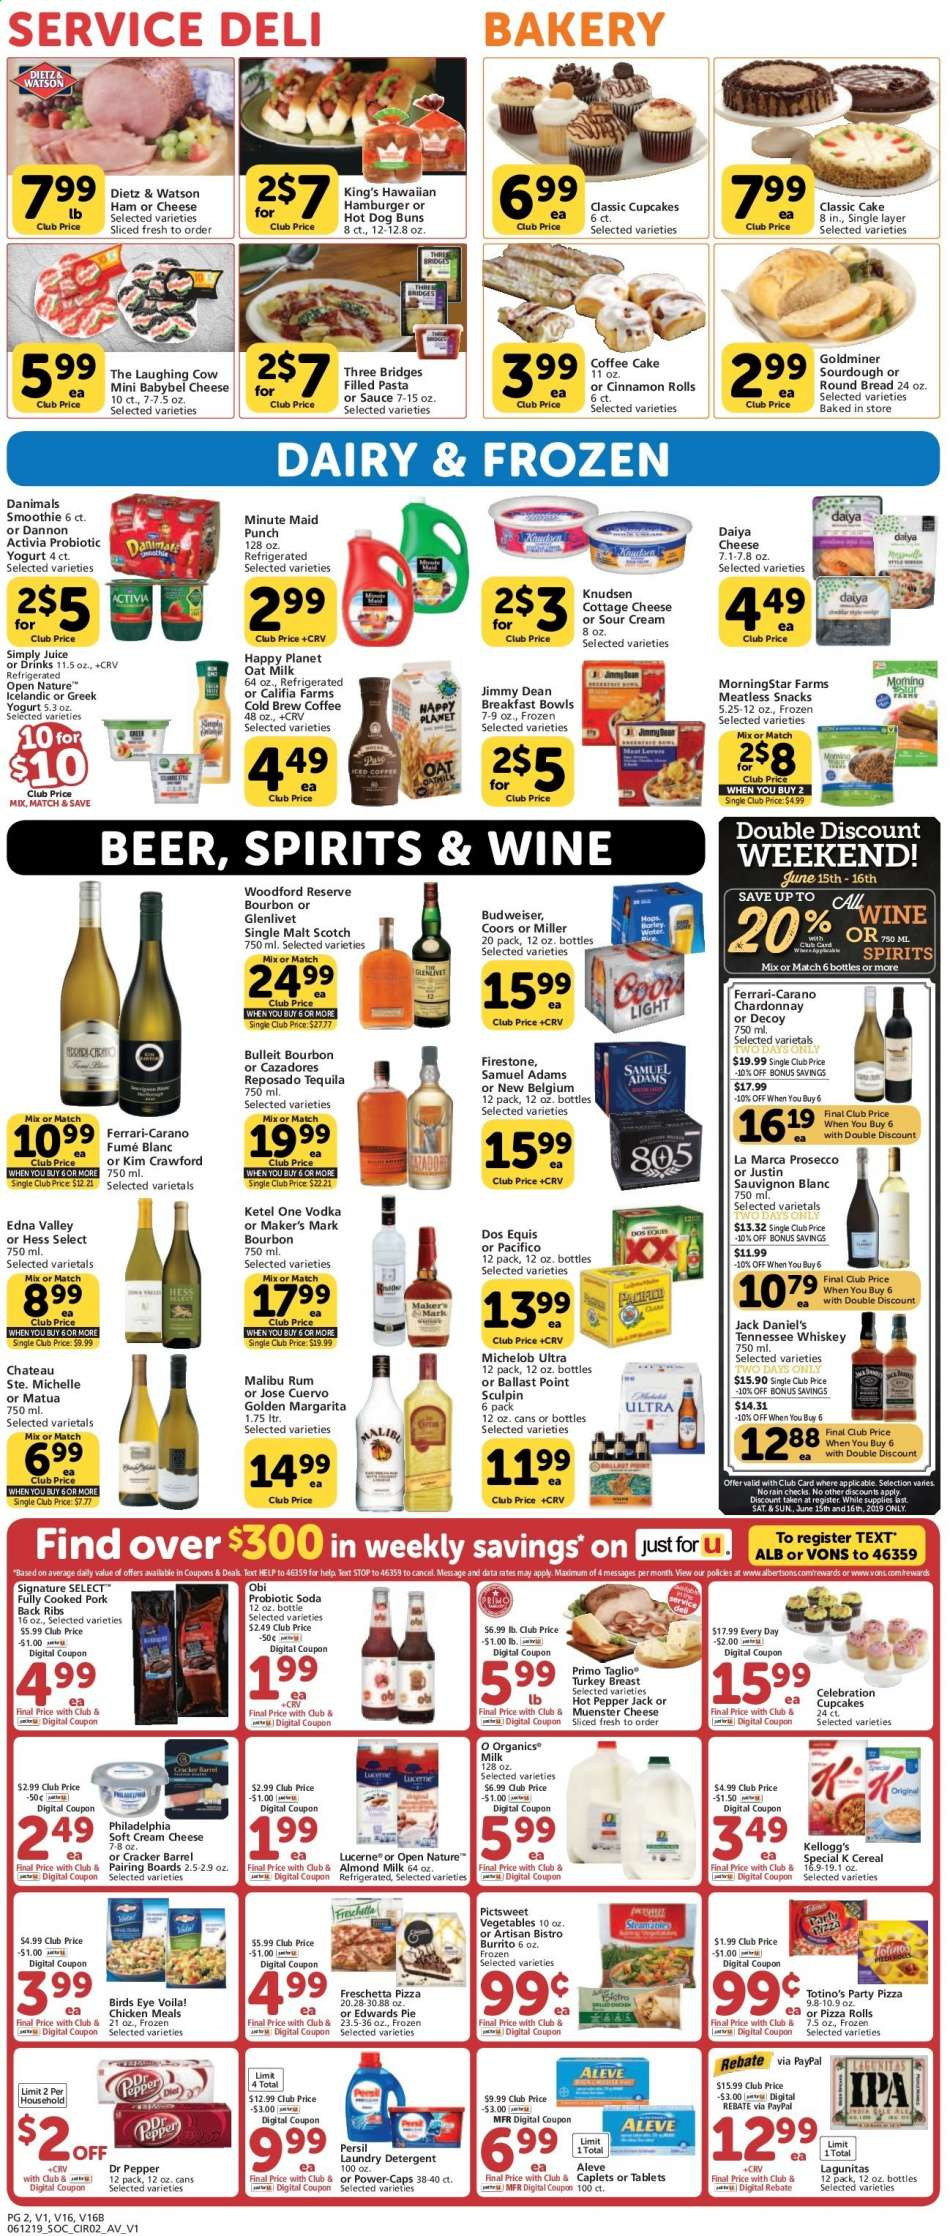 Albertsons flyer 06 12 2019 - 06 18 2019 | Weekly-ads us